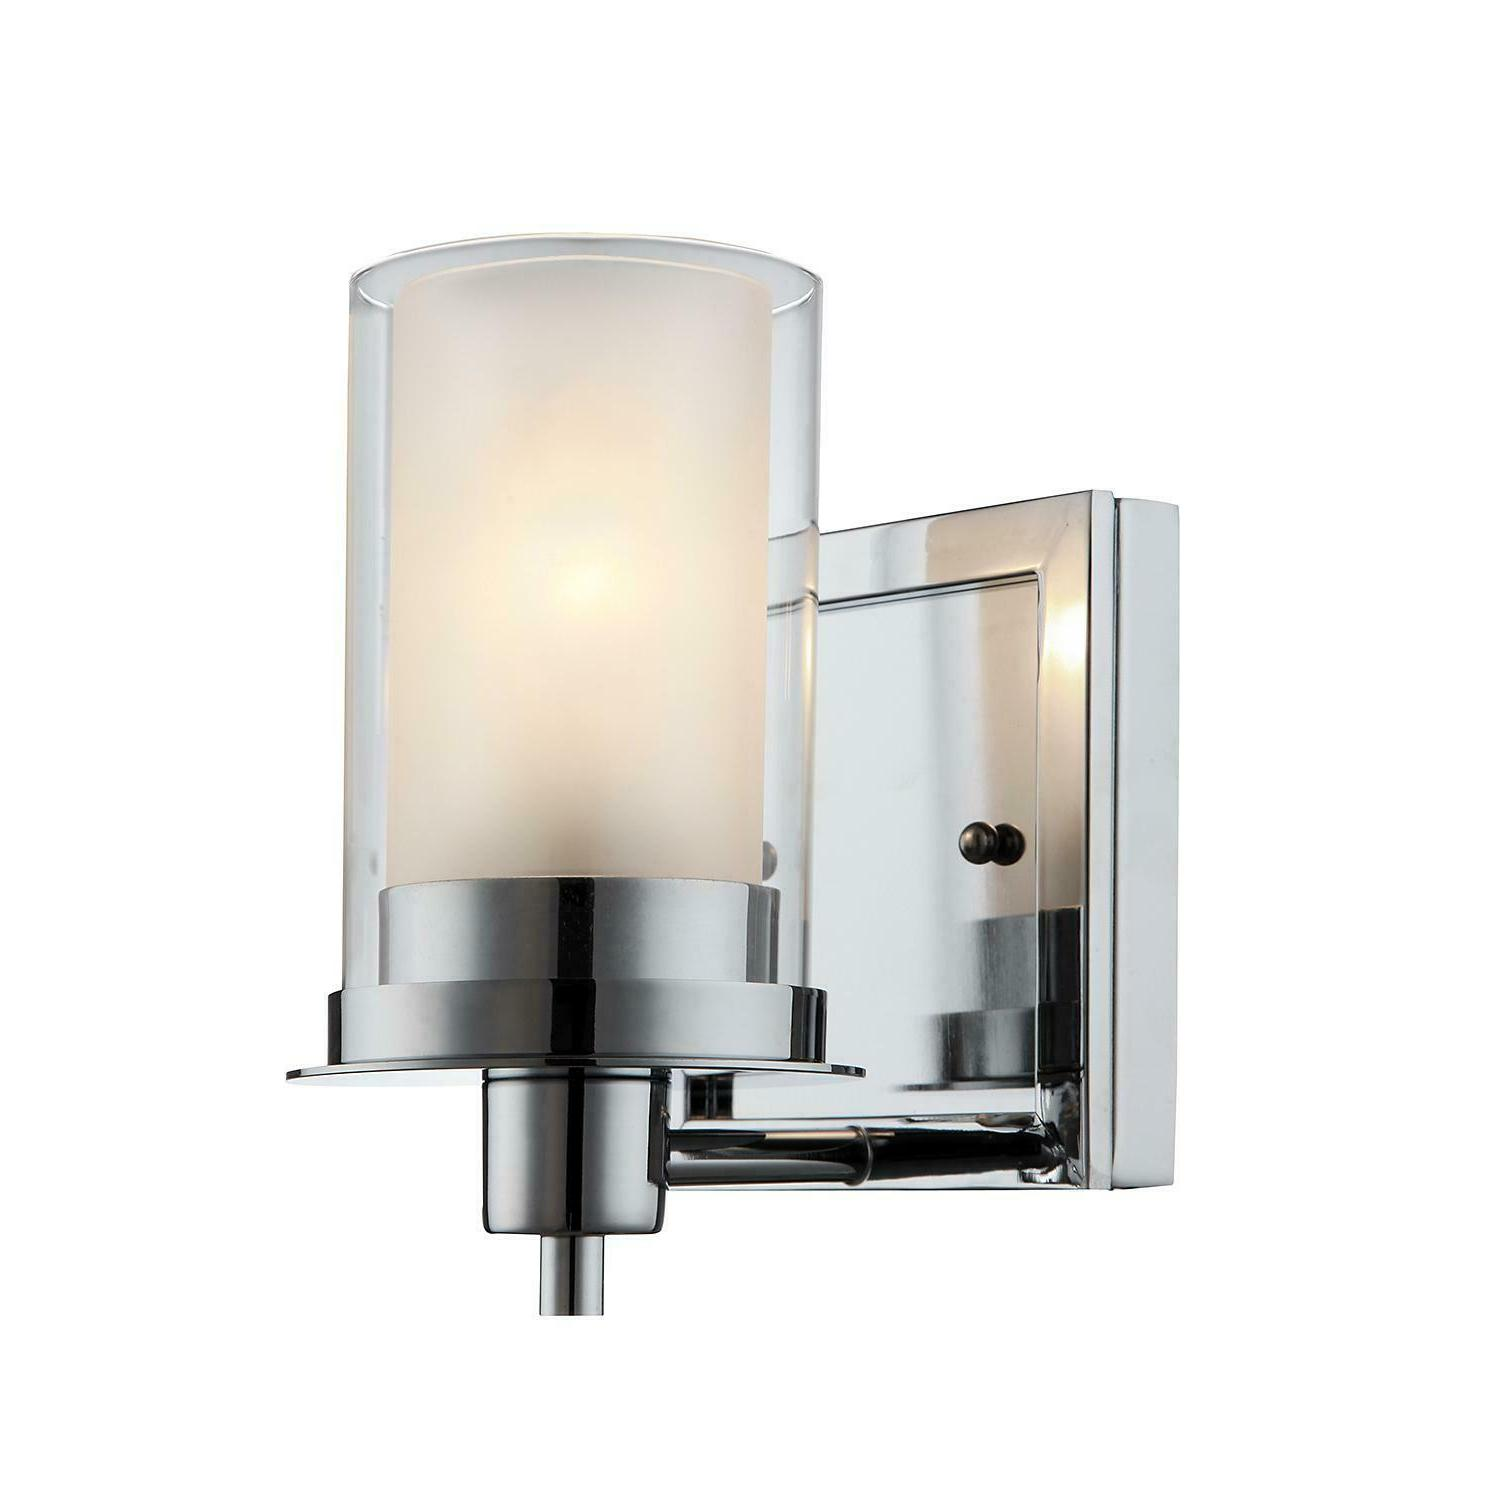 avalon chrome wall mounted light fixture 1